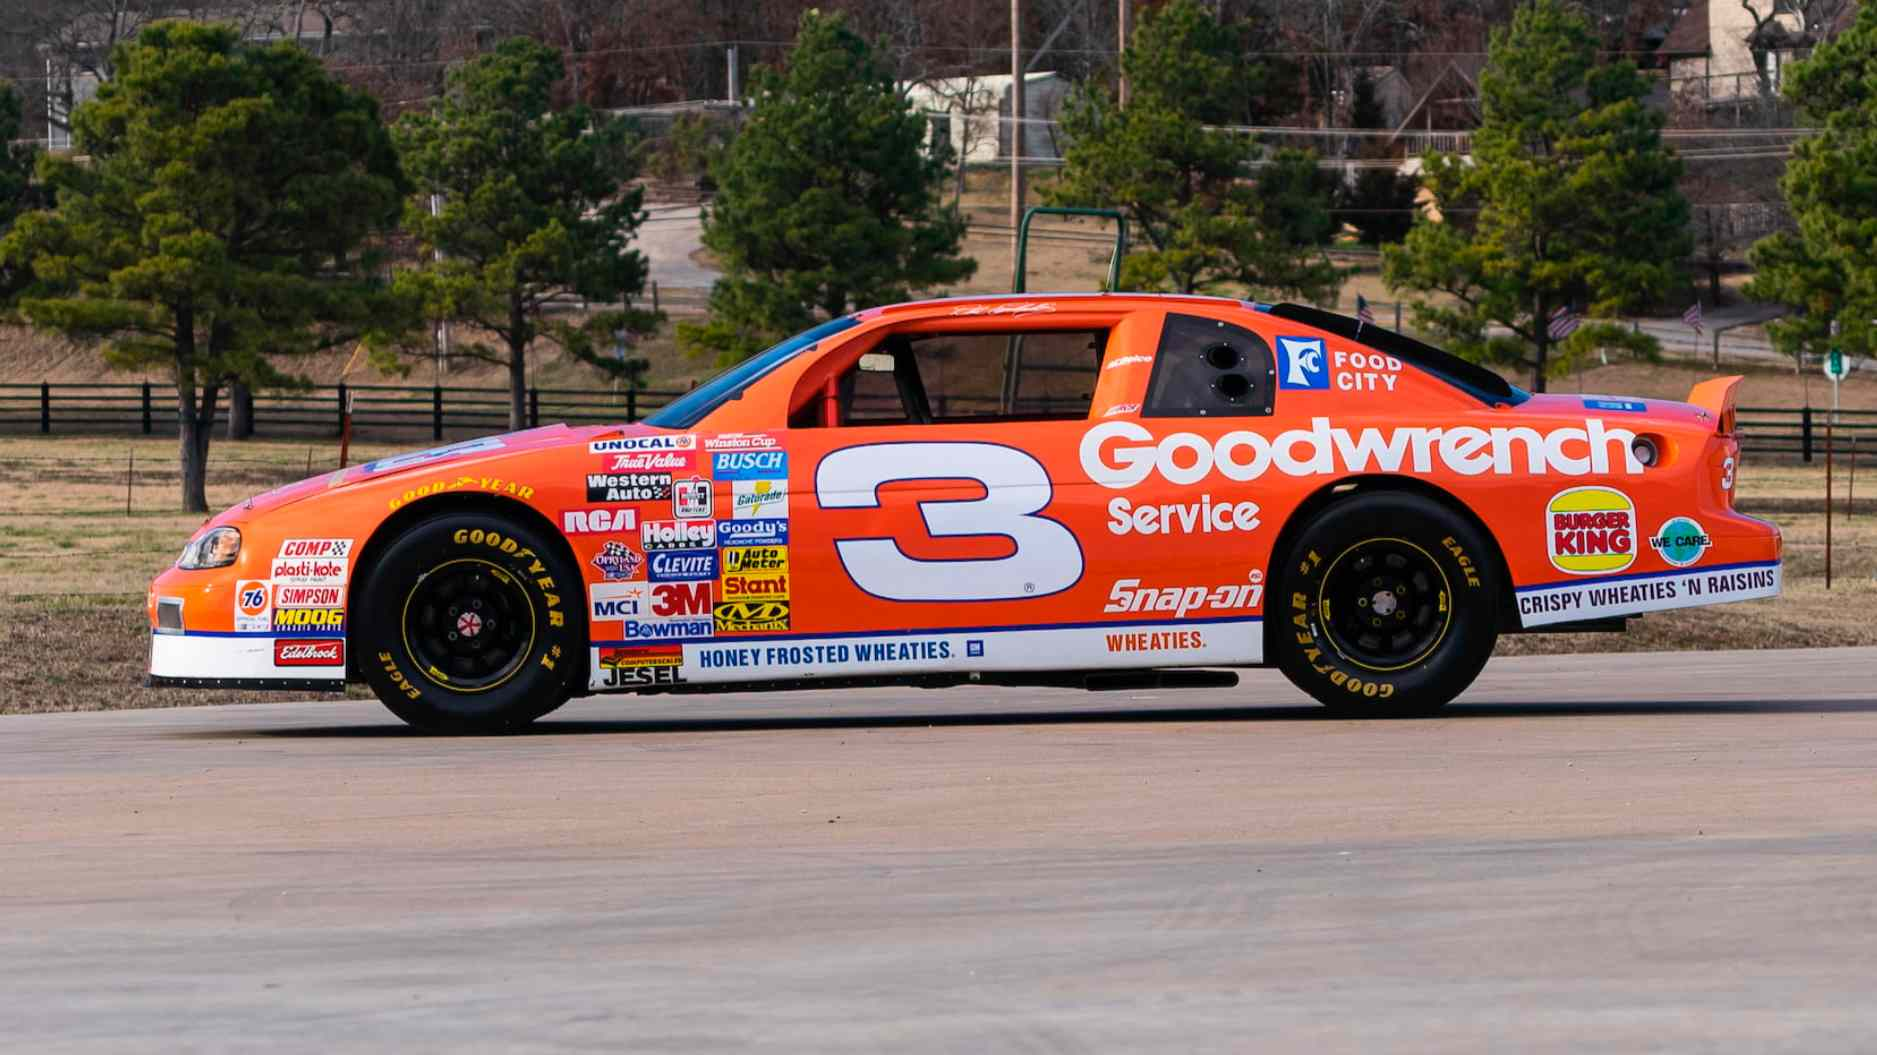 Nascar Racing Games >> Dale Earnhardt's 1997 Wheaties car: Richard Childress Racing shows it off from the museum ...